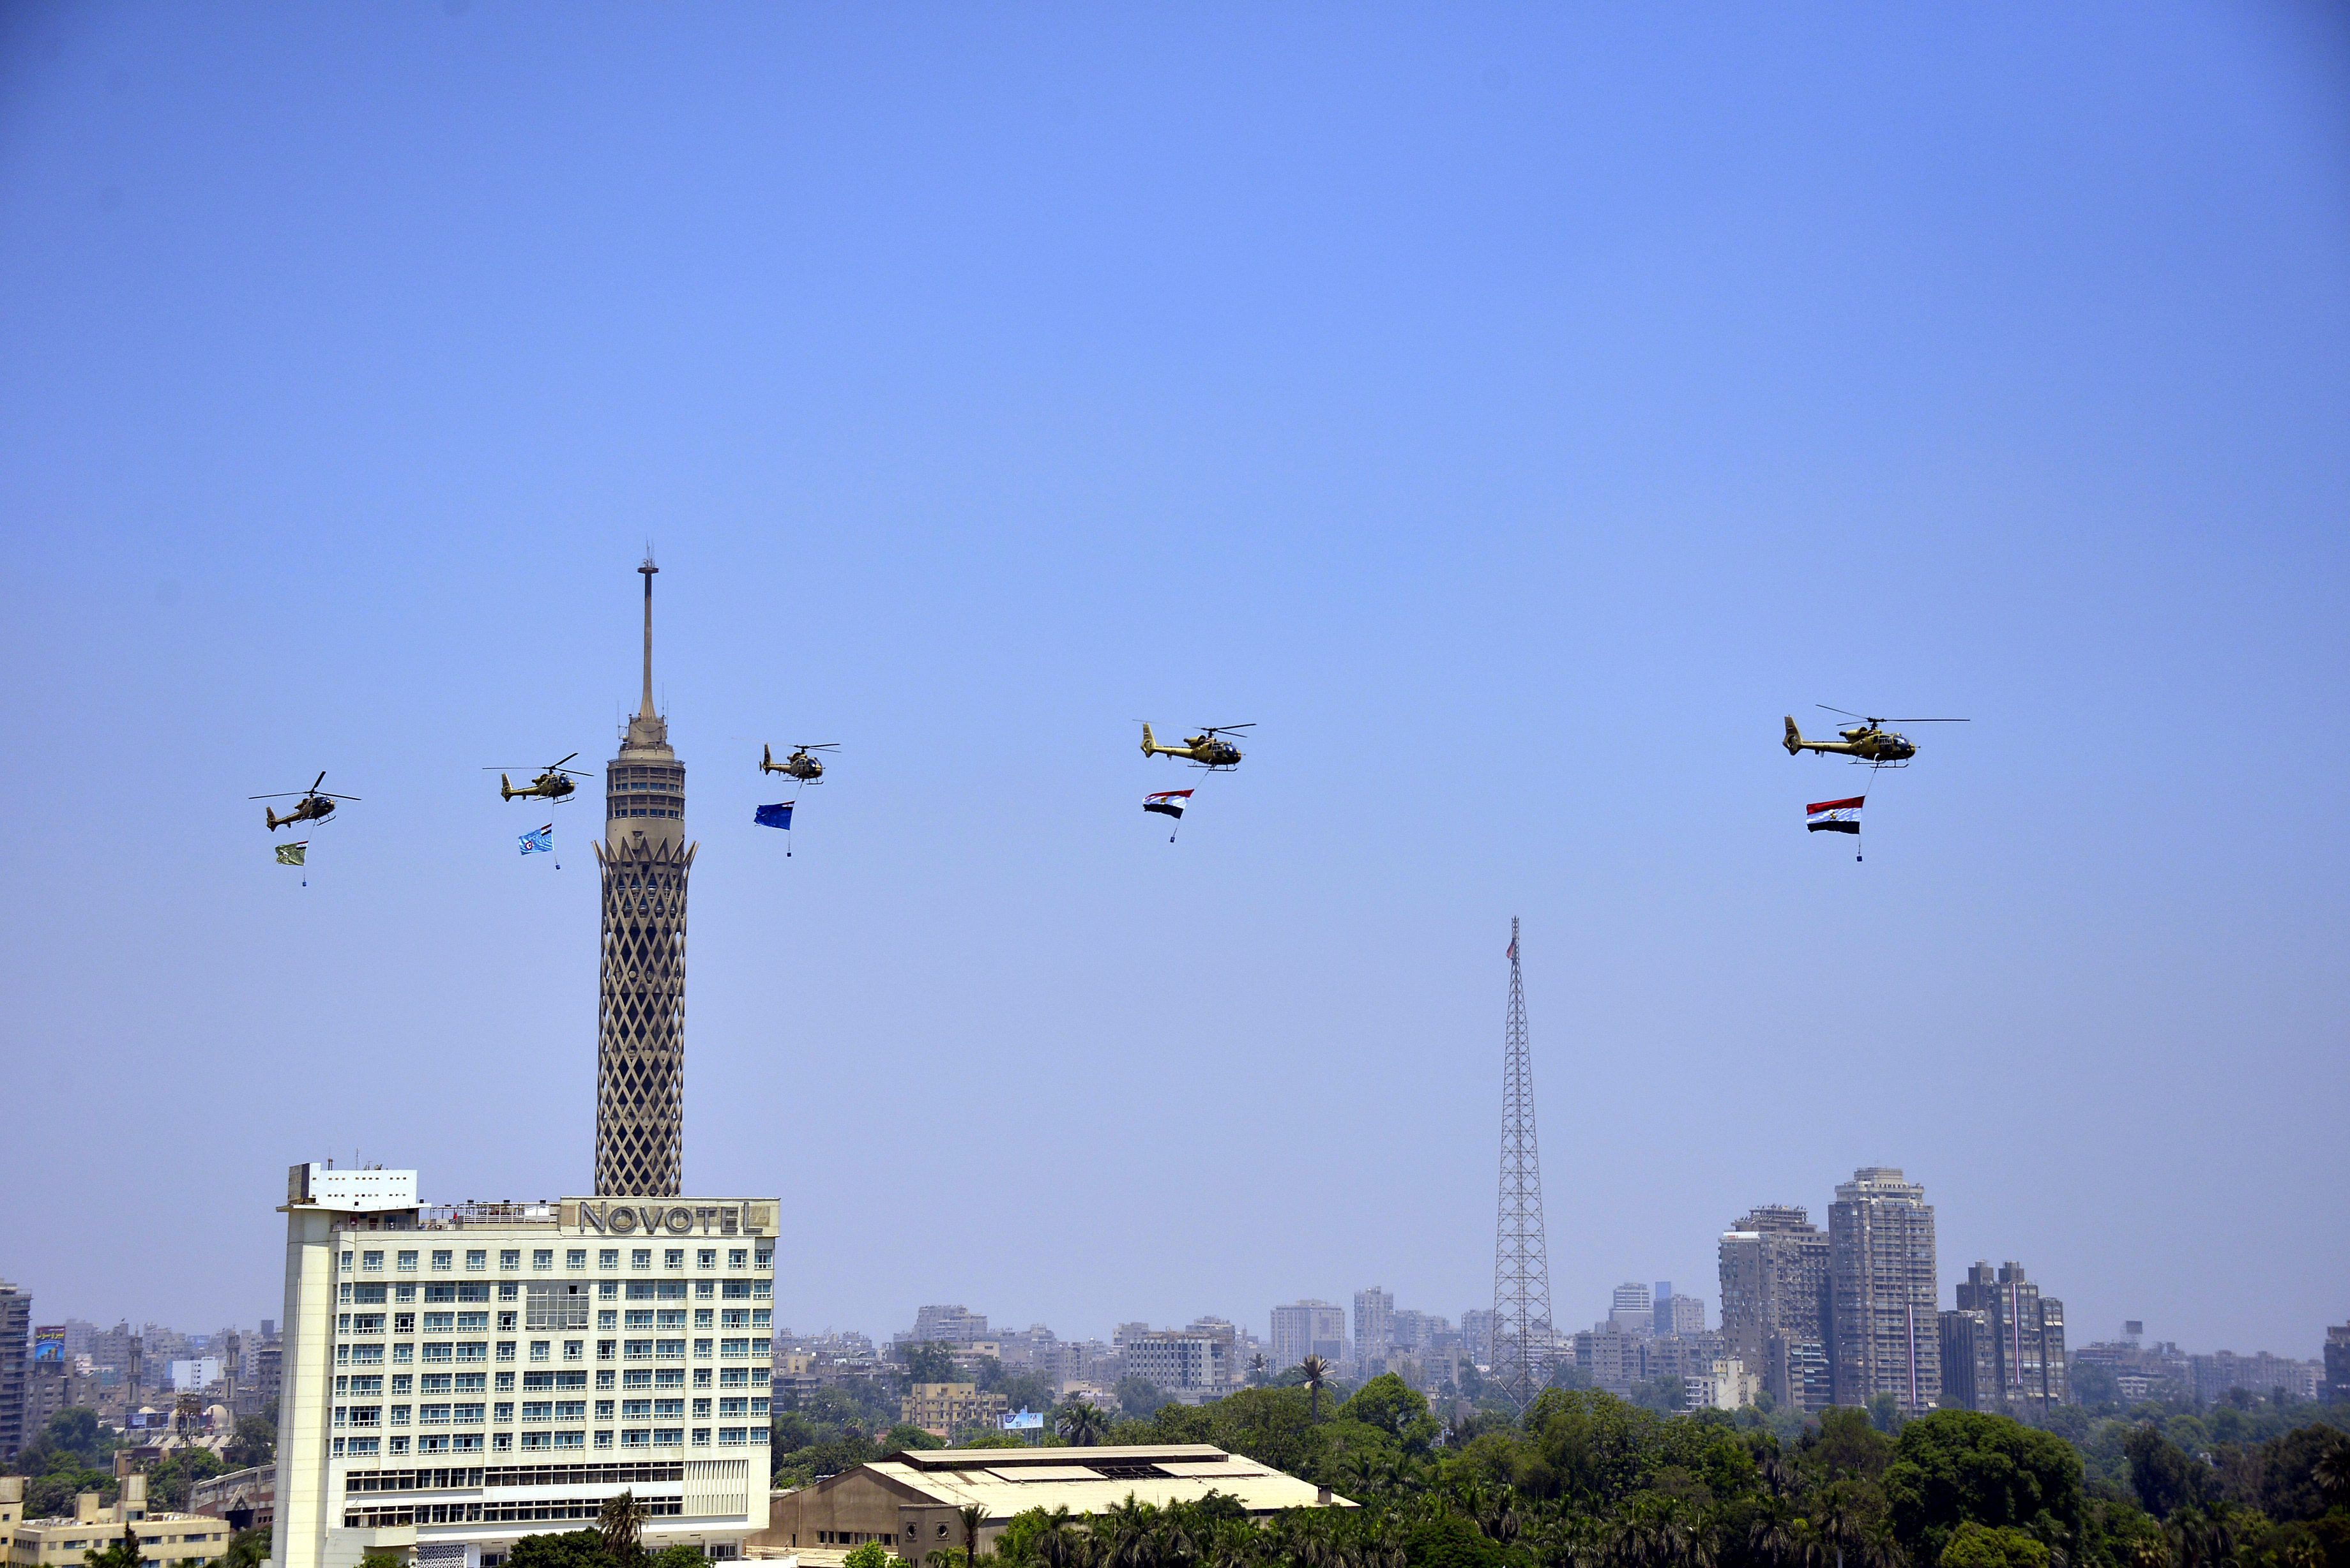 Egyptian army helicopters fly over Cairo with the national flags. Clashes between Muslim Brotherhood supporters and opponents have raised fears of deadly violence over the military's decision to depose and arrest Morsi, Egypt's first democratically elected president.